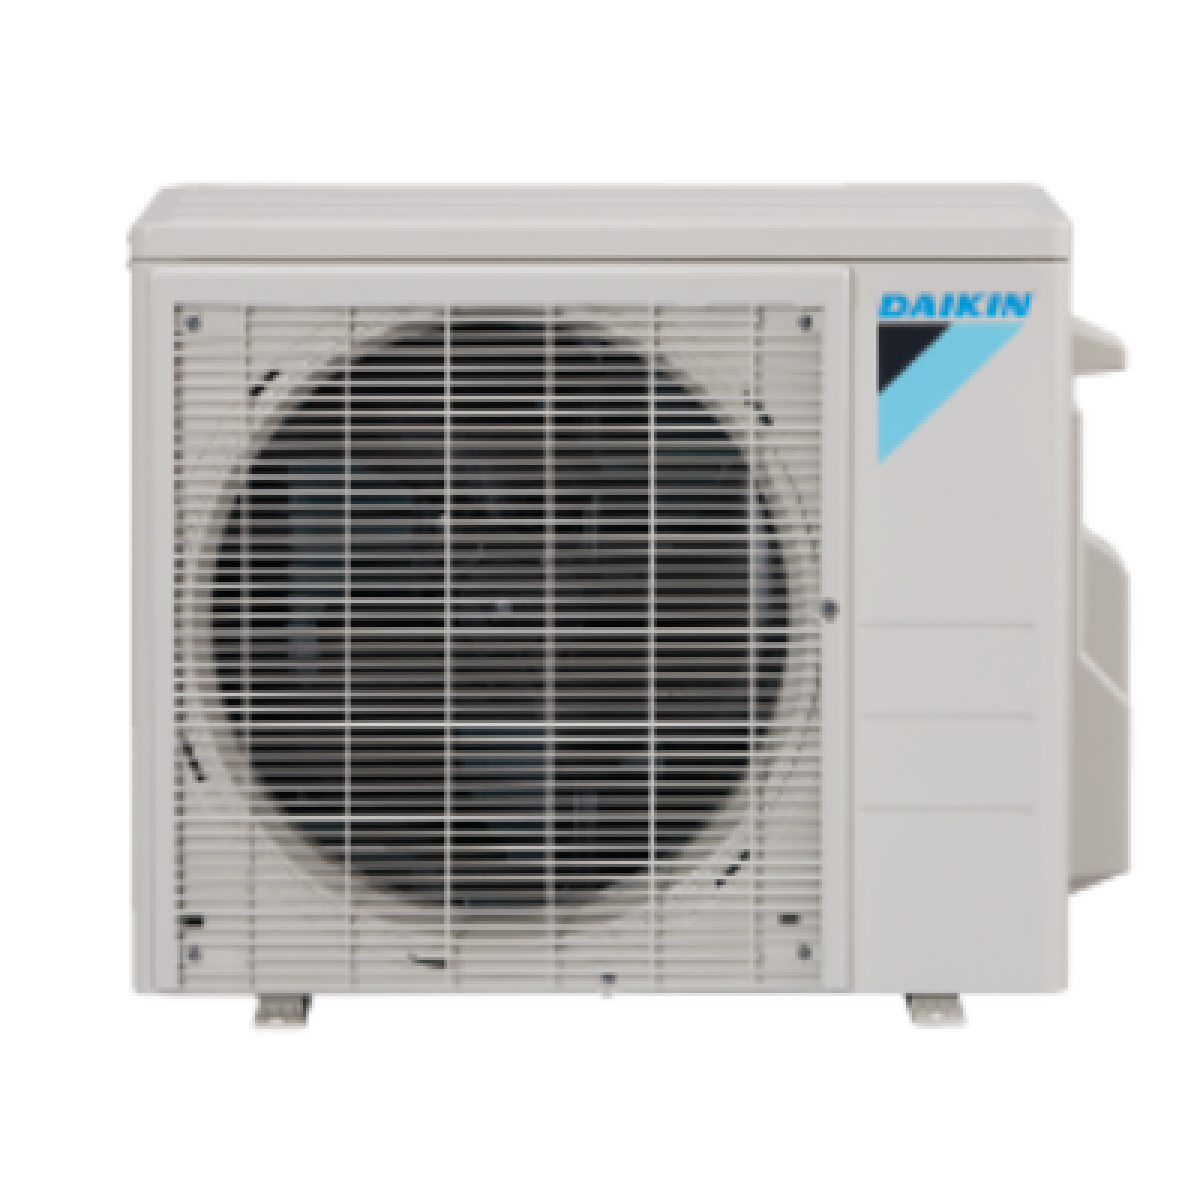 #1E82AD Daikin 2 Zone 18K BTU Heat Pump With Two (2) 9K BTU  Brand New 9251 Air Conditioning Perth Daikin images with 1200x1200 px on helpvideos.info - Air Conditioners, Air Coolers and more